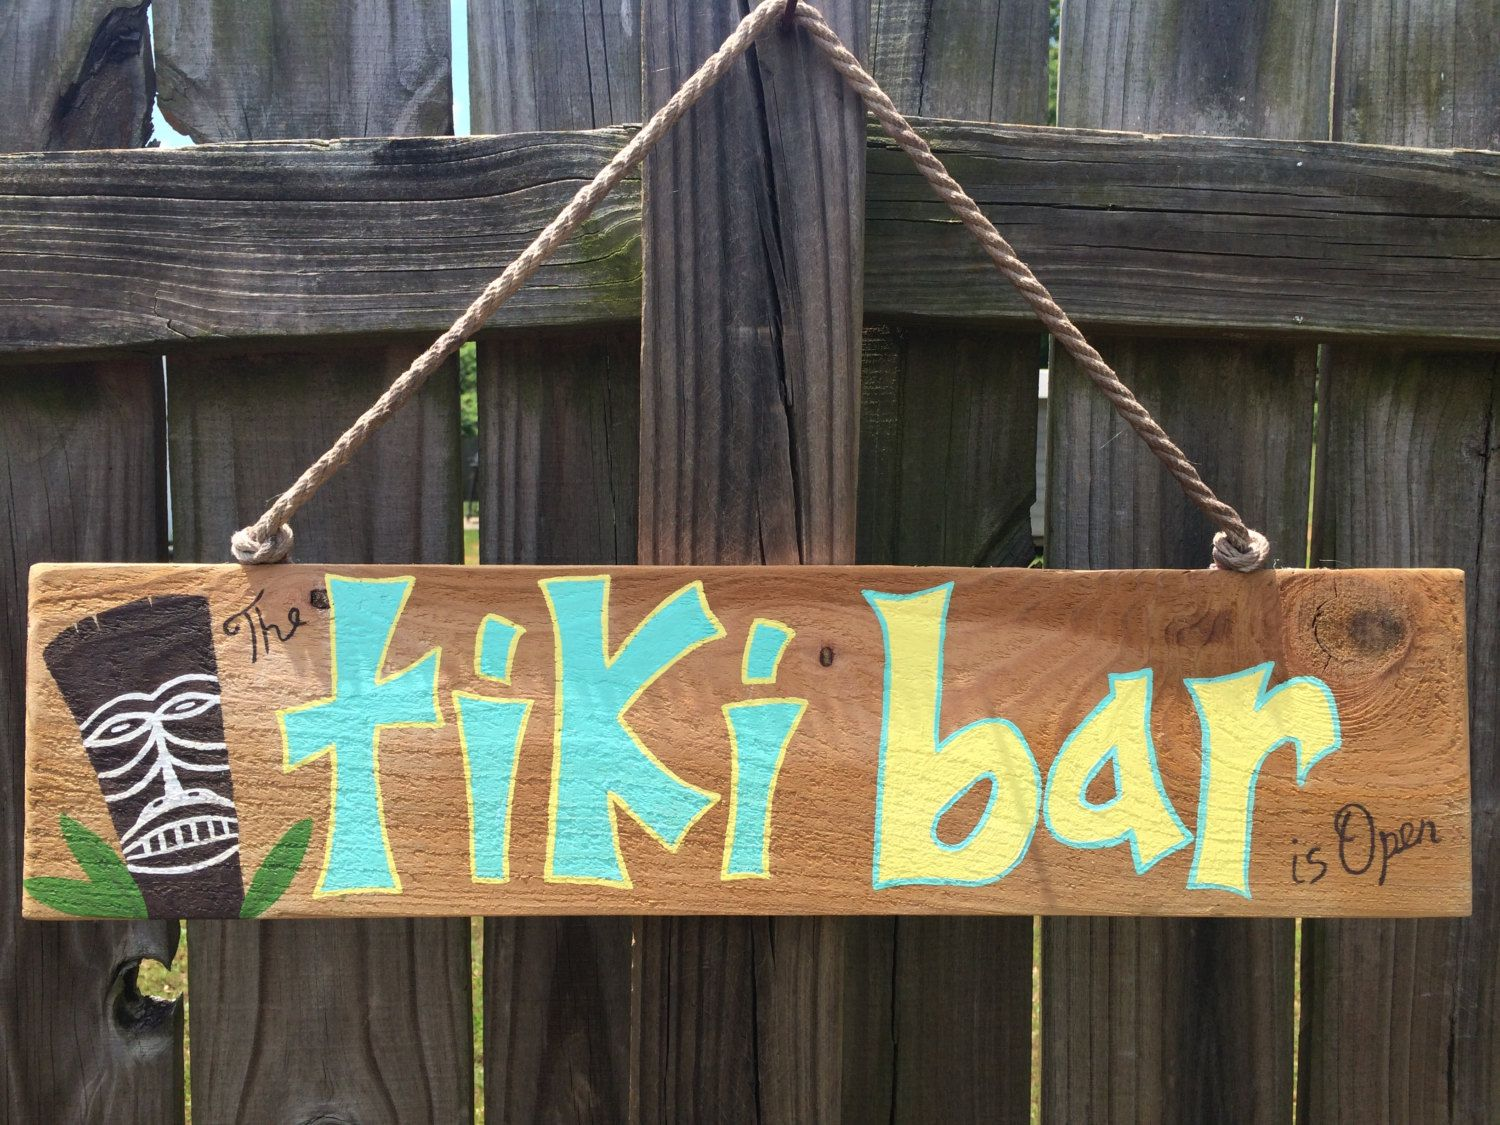 The tiki bar is openwood sign hand painted wall art wall decor by